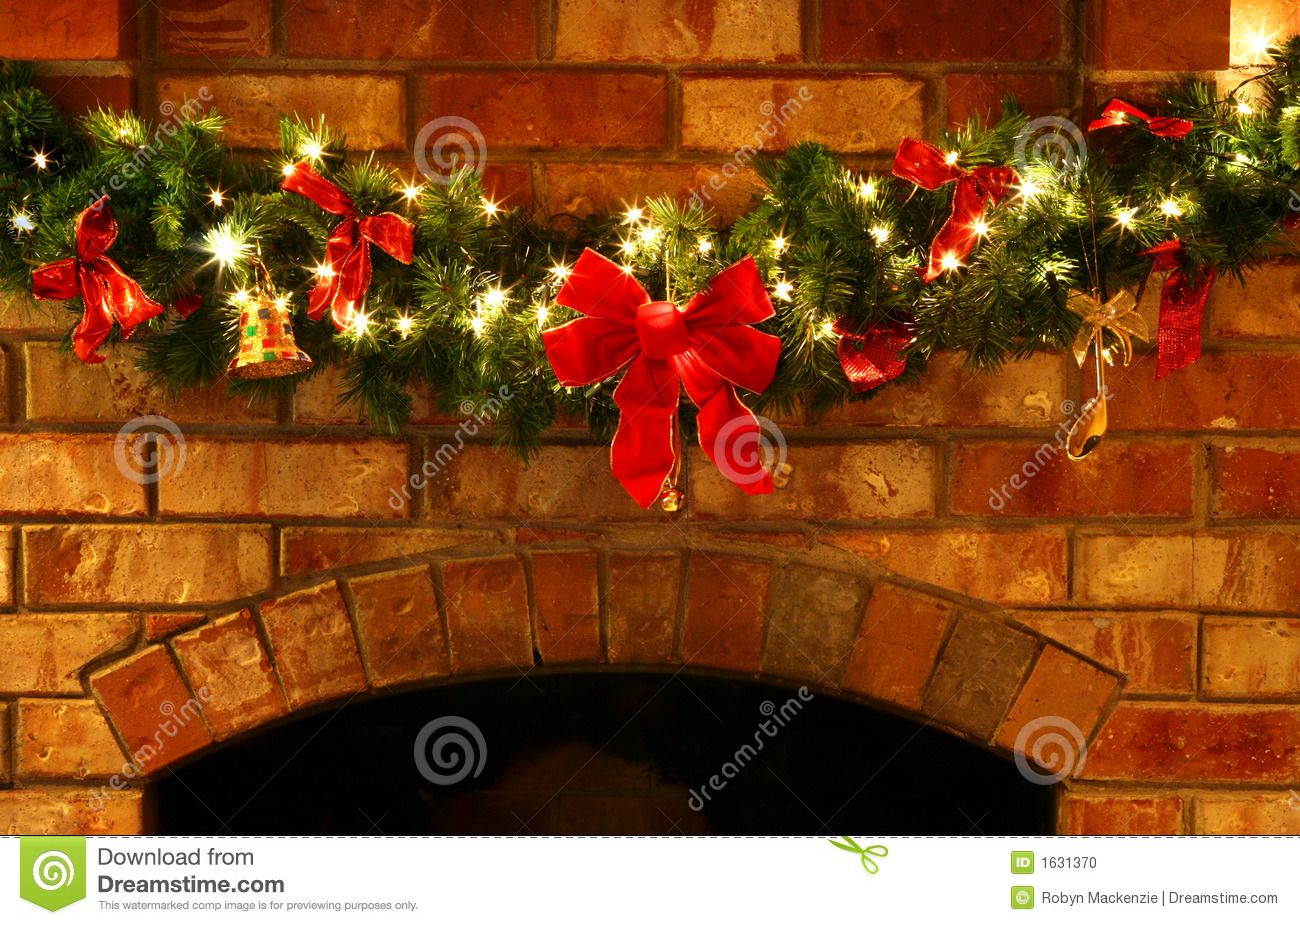 Photo About A Christmas Garland On A Brick Fireplace With Fairy Lights And Red Bows Imag In 2020 With Images Christmas Lights Garland Christmas Fireplace Decor Christmas Garland